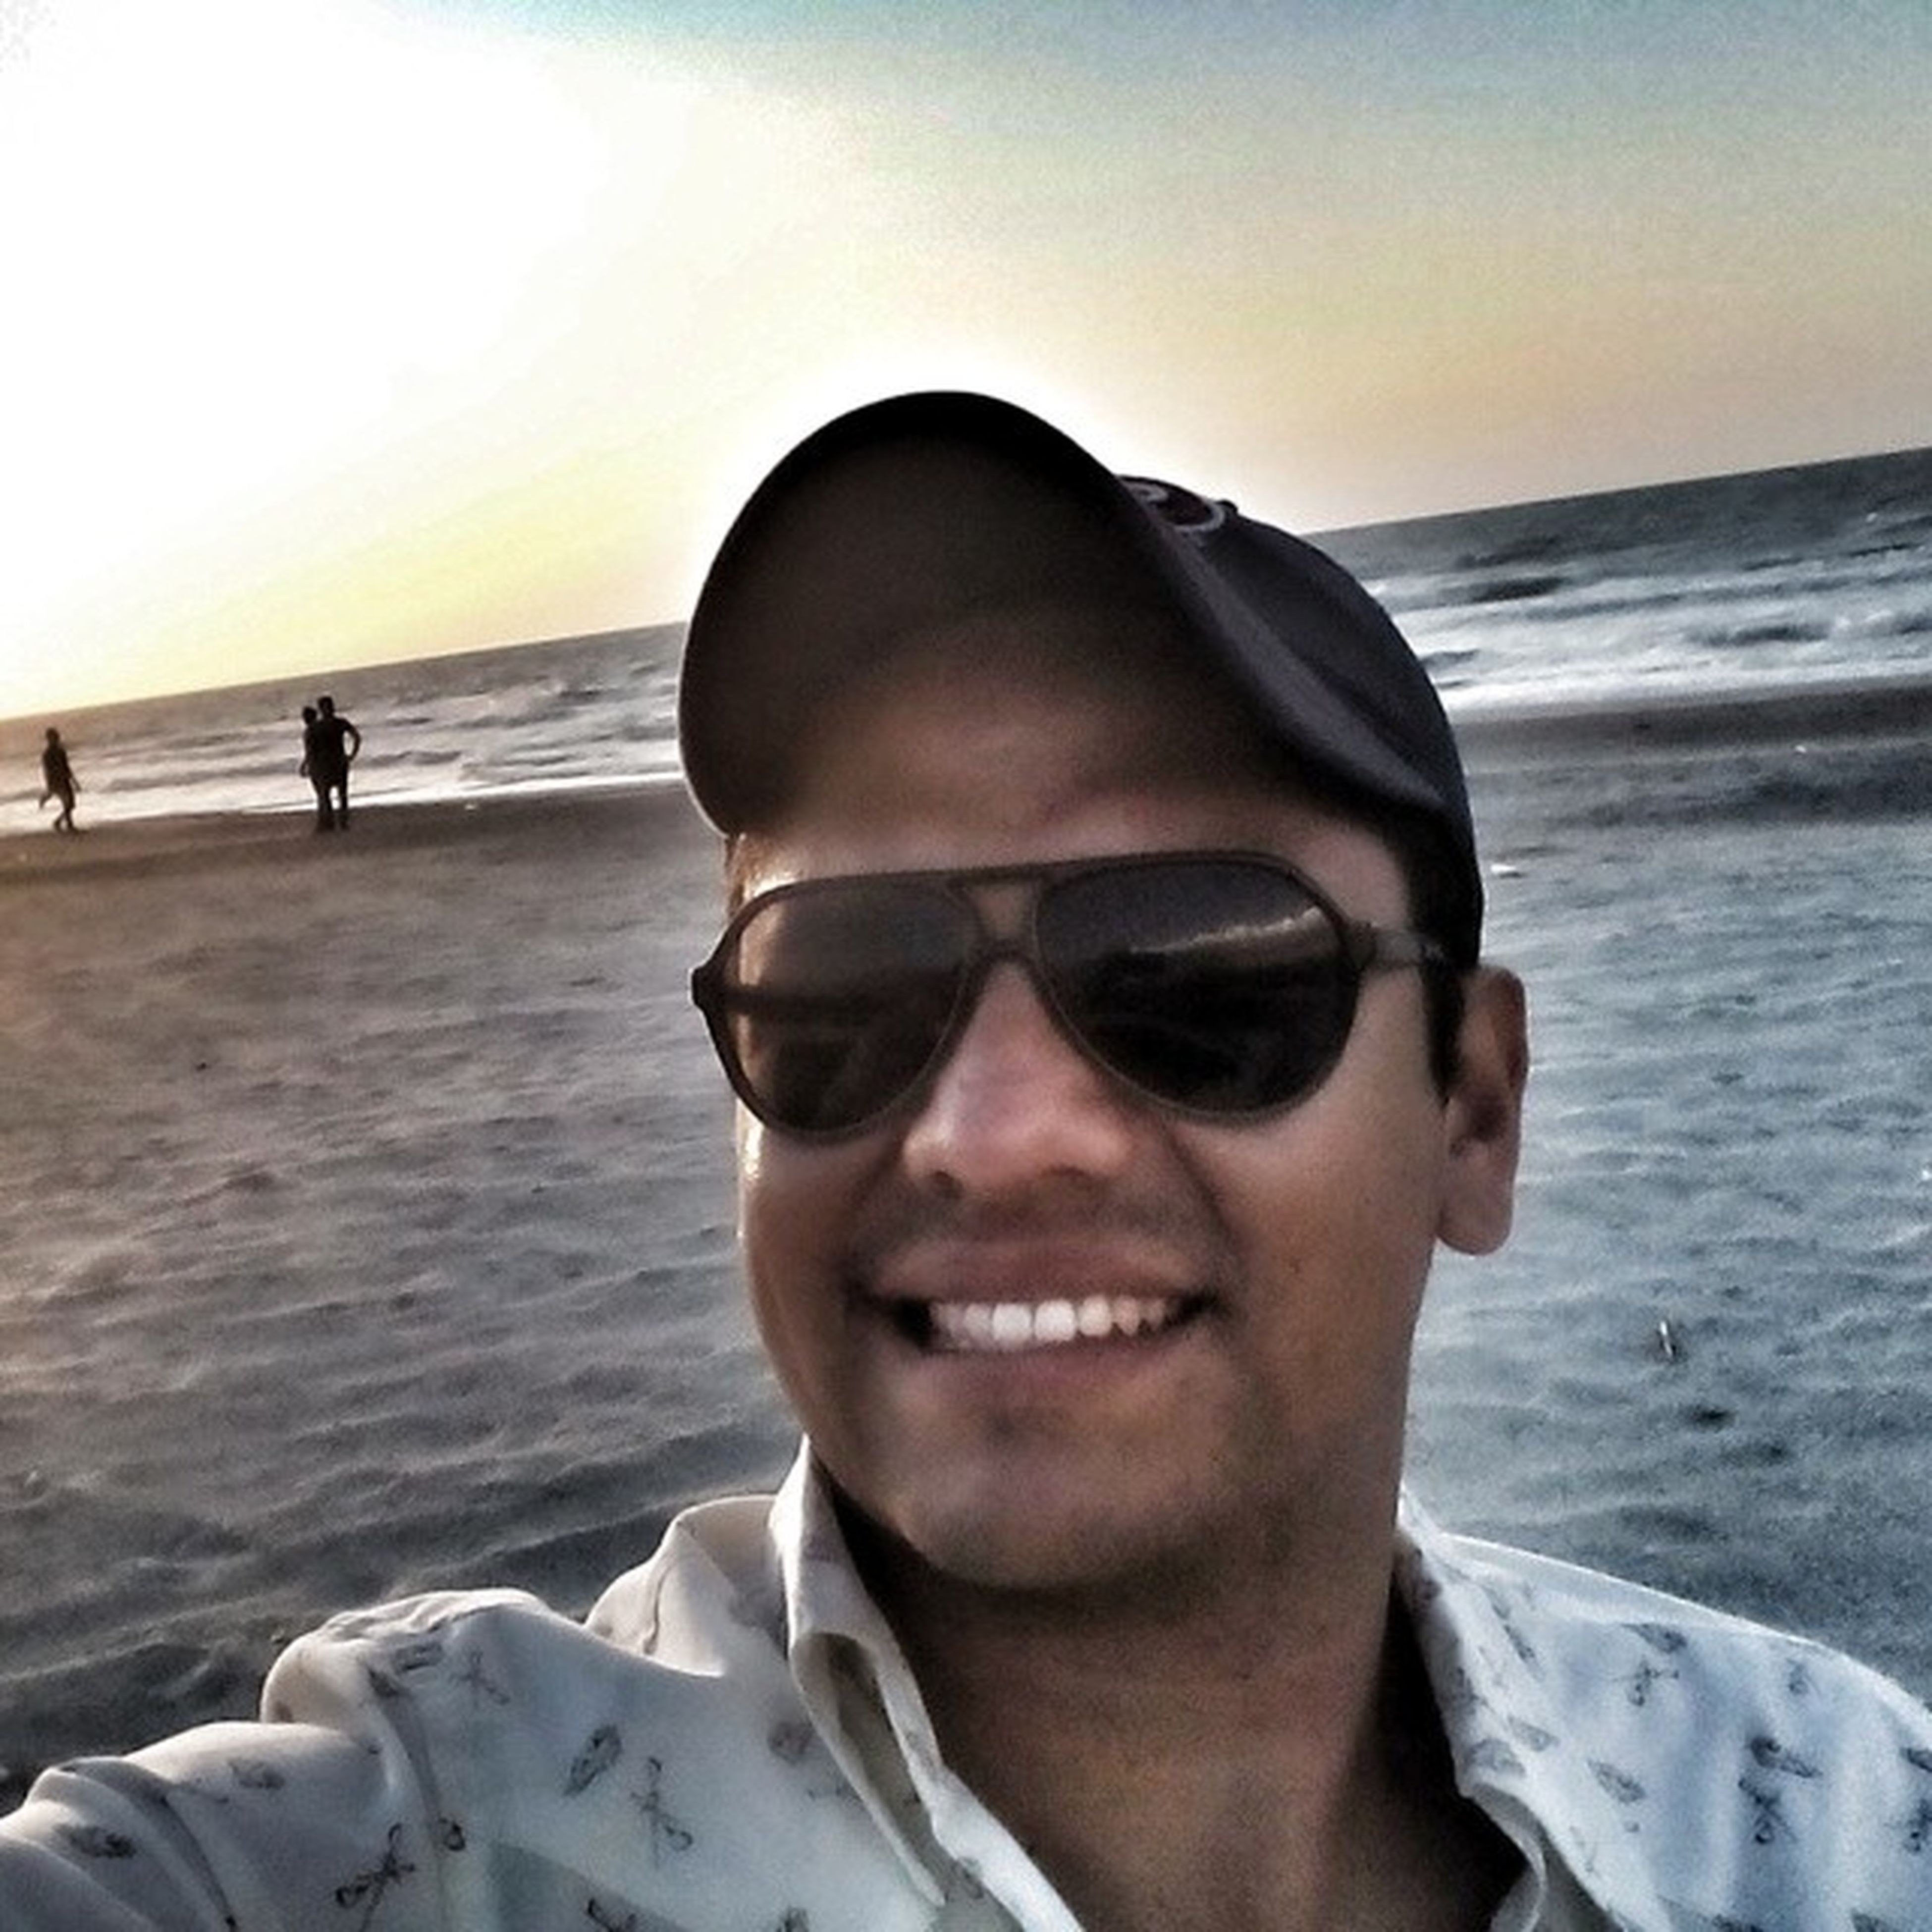 sunglasses, beach, sea, lifestyles, portrait, young adult, person, leisure activity, young men, headshot, looking at camera, water, vacations, shore, front view, head and shoulders, sand, sky